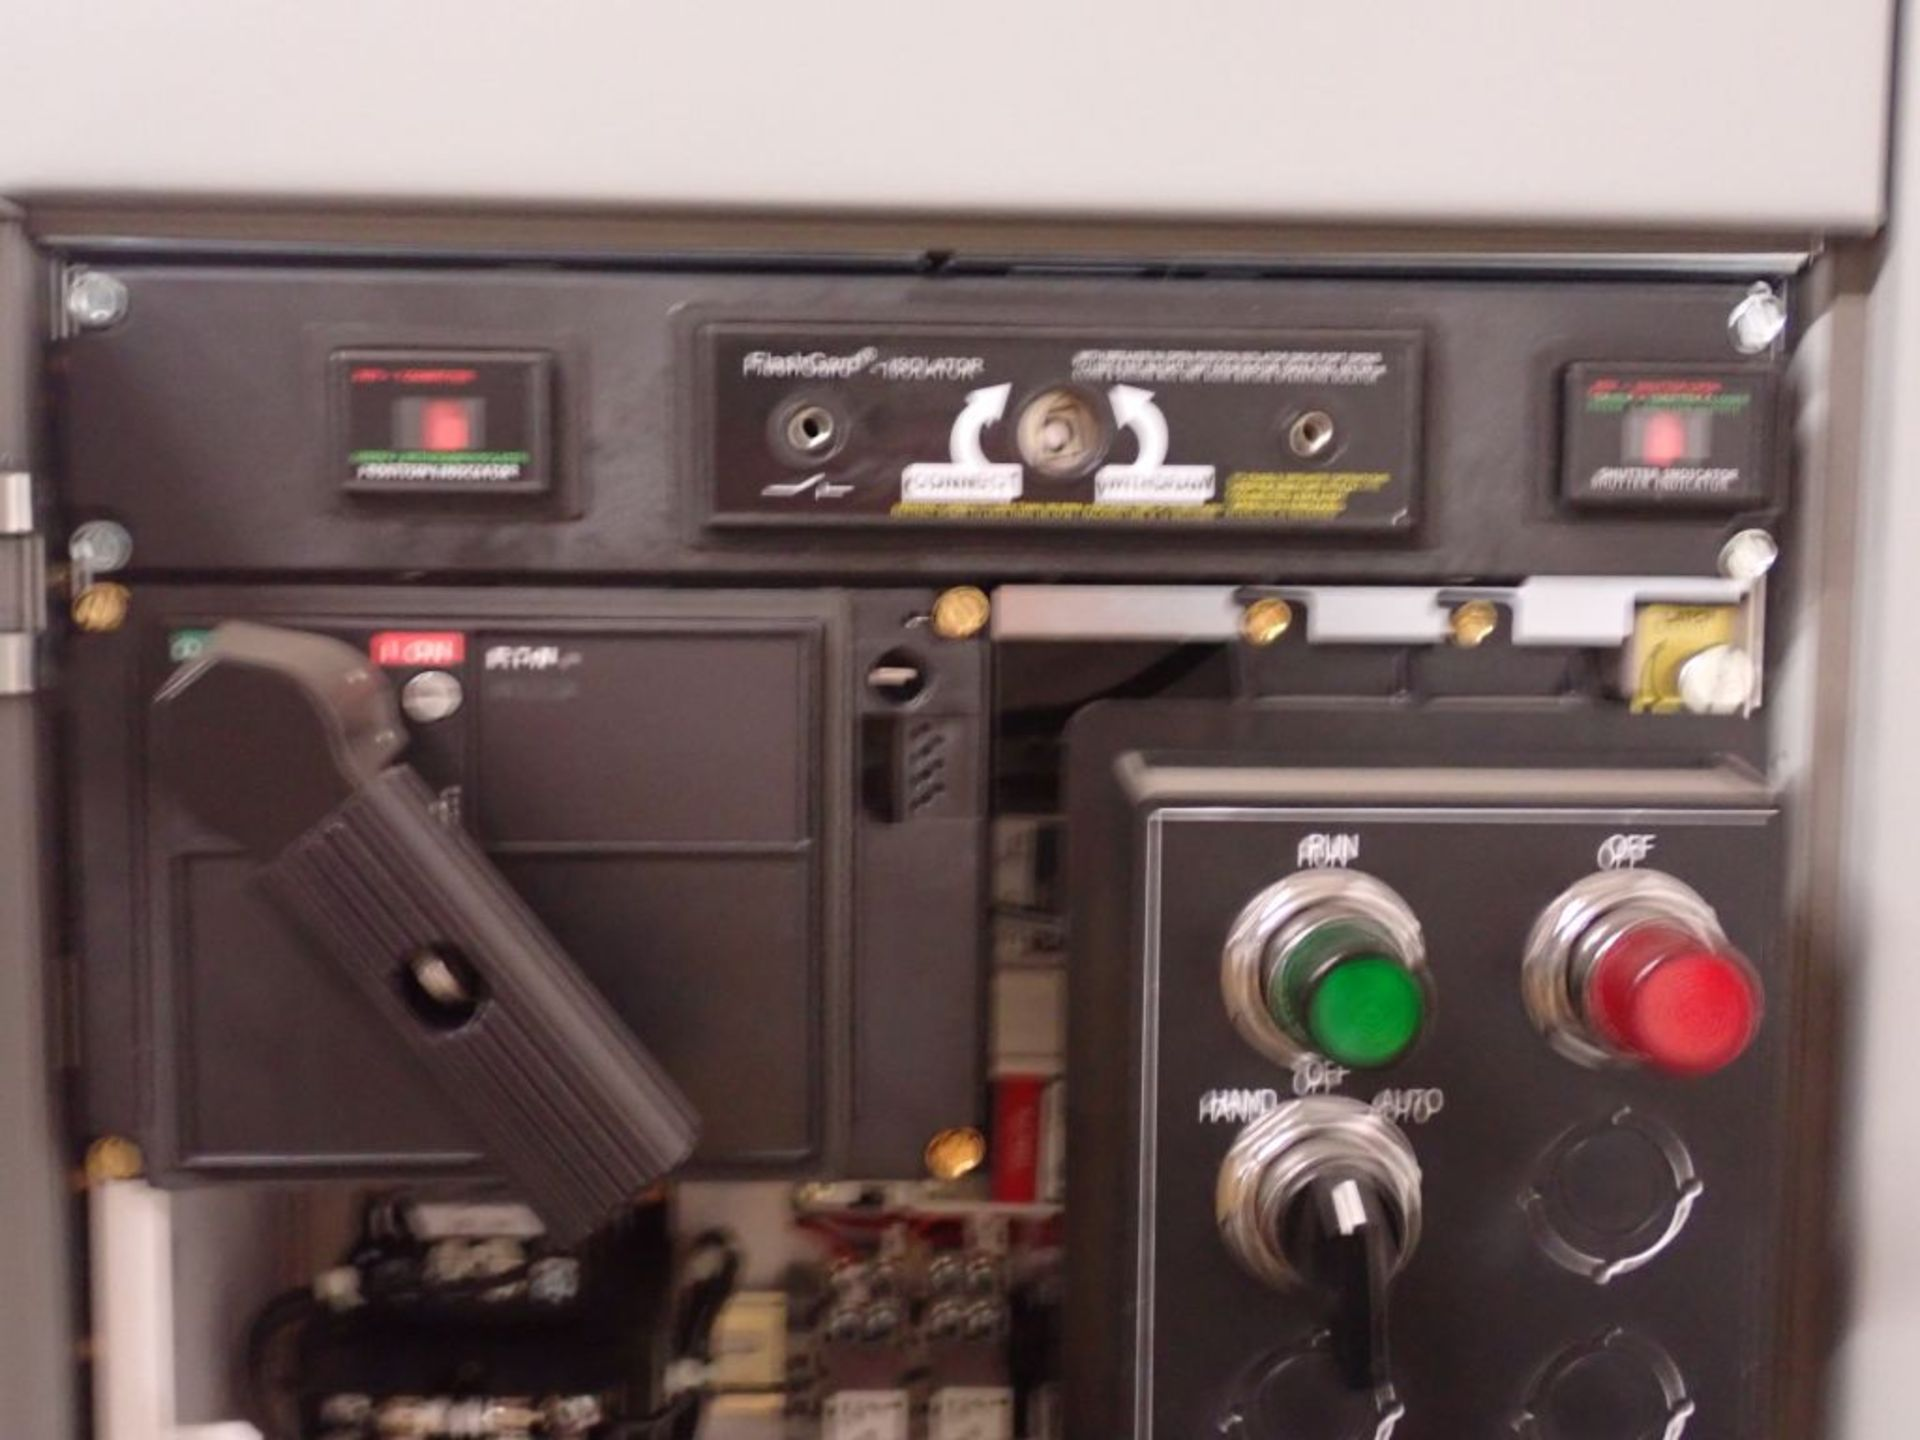 Eaton Freedom 2100 Series Motor Control Center | (11) F206-30A-10HP; (5) F206-15A-10HP; (1) SVX900- - Image 89 of 102